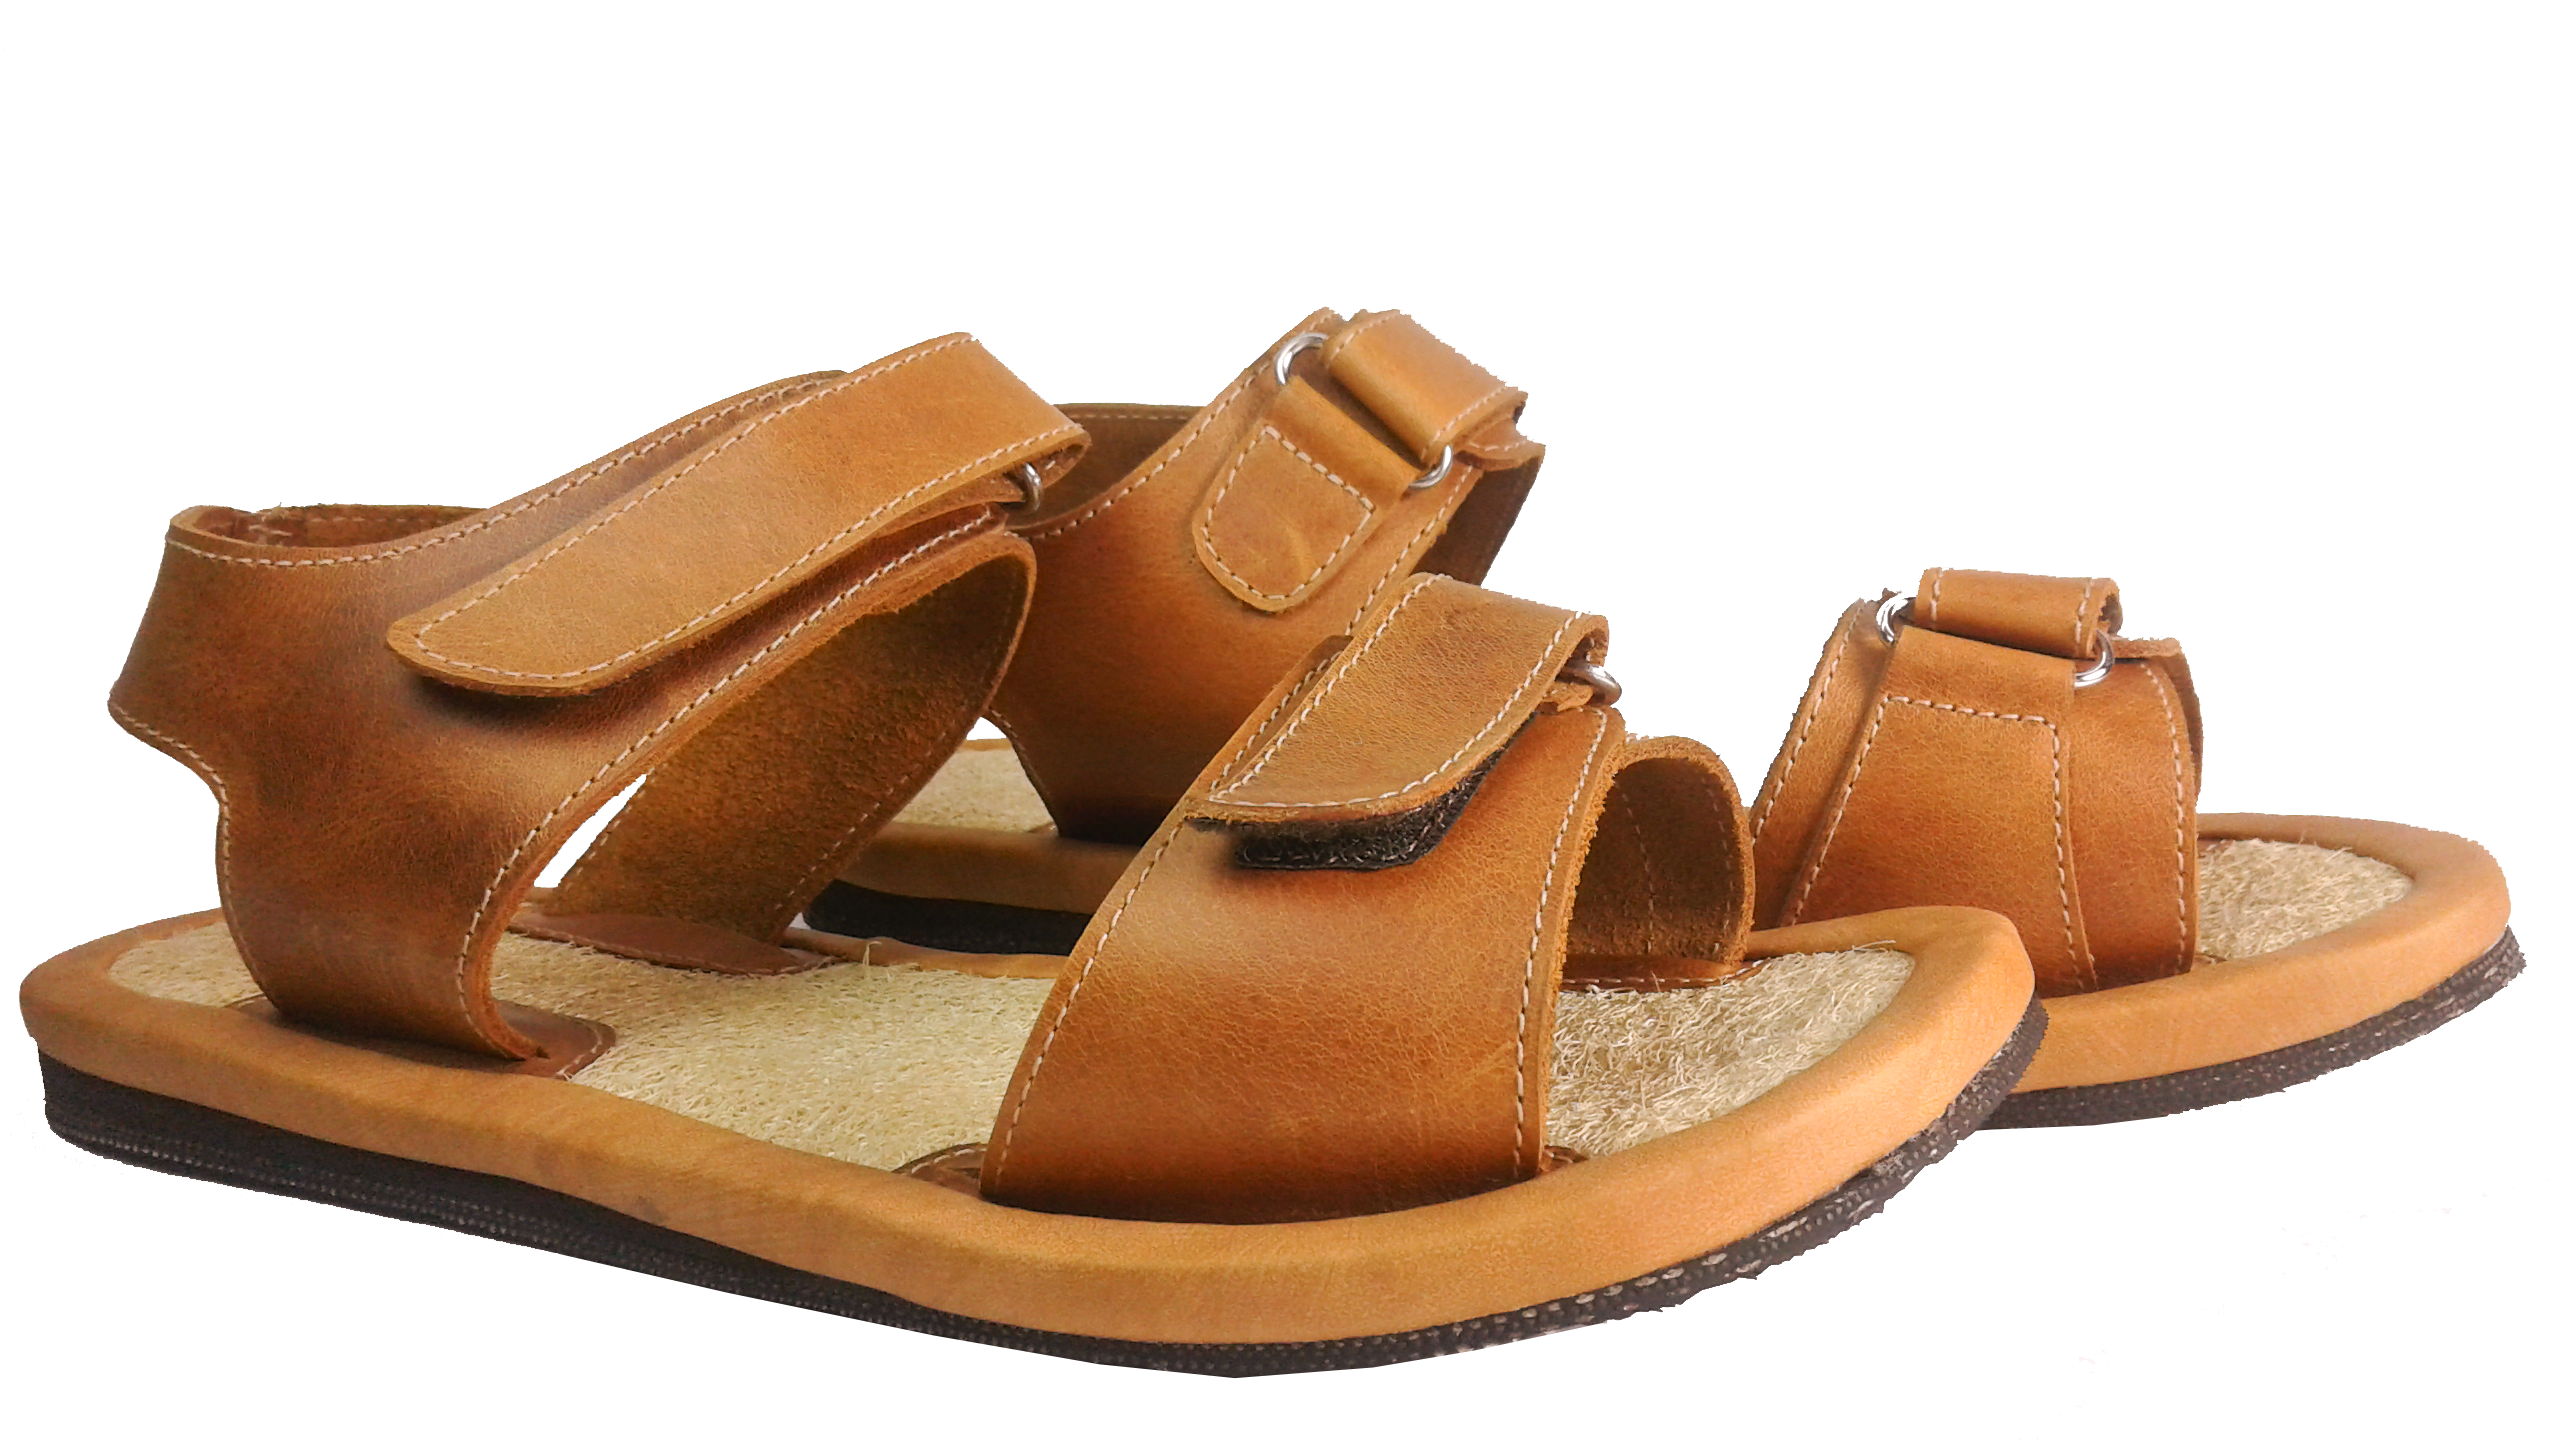 Ergonimic Eco-Friendly Sandal